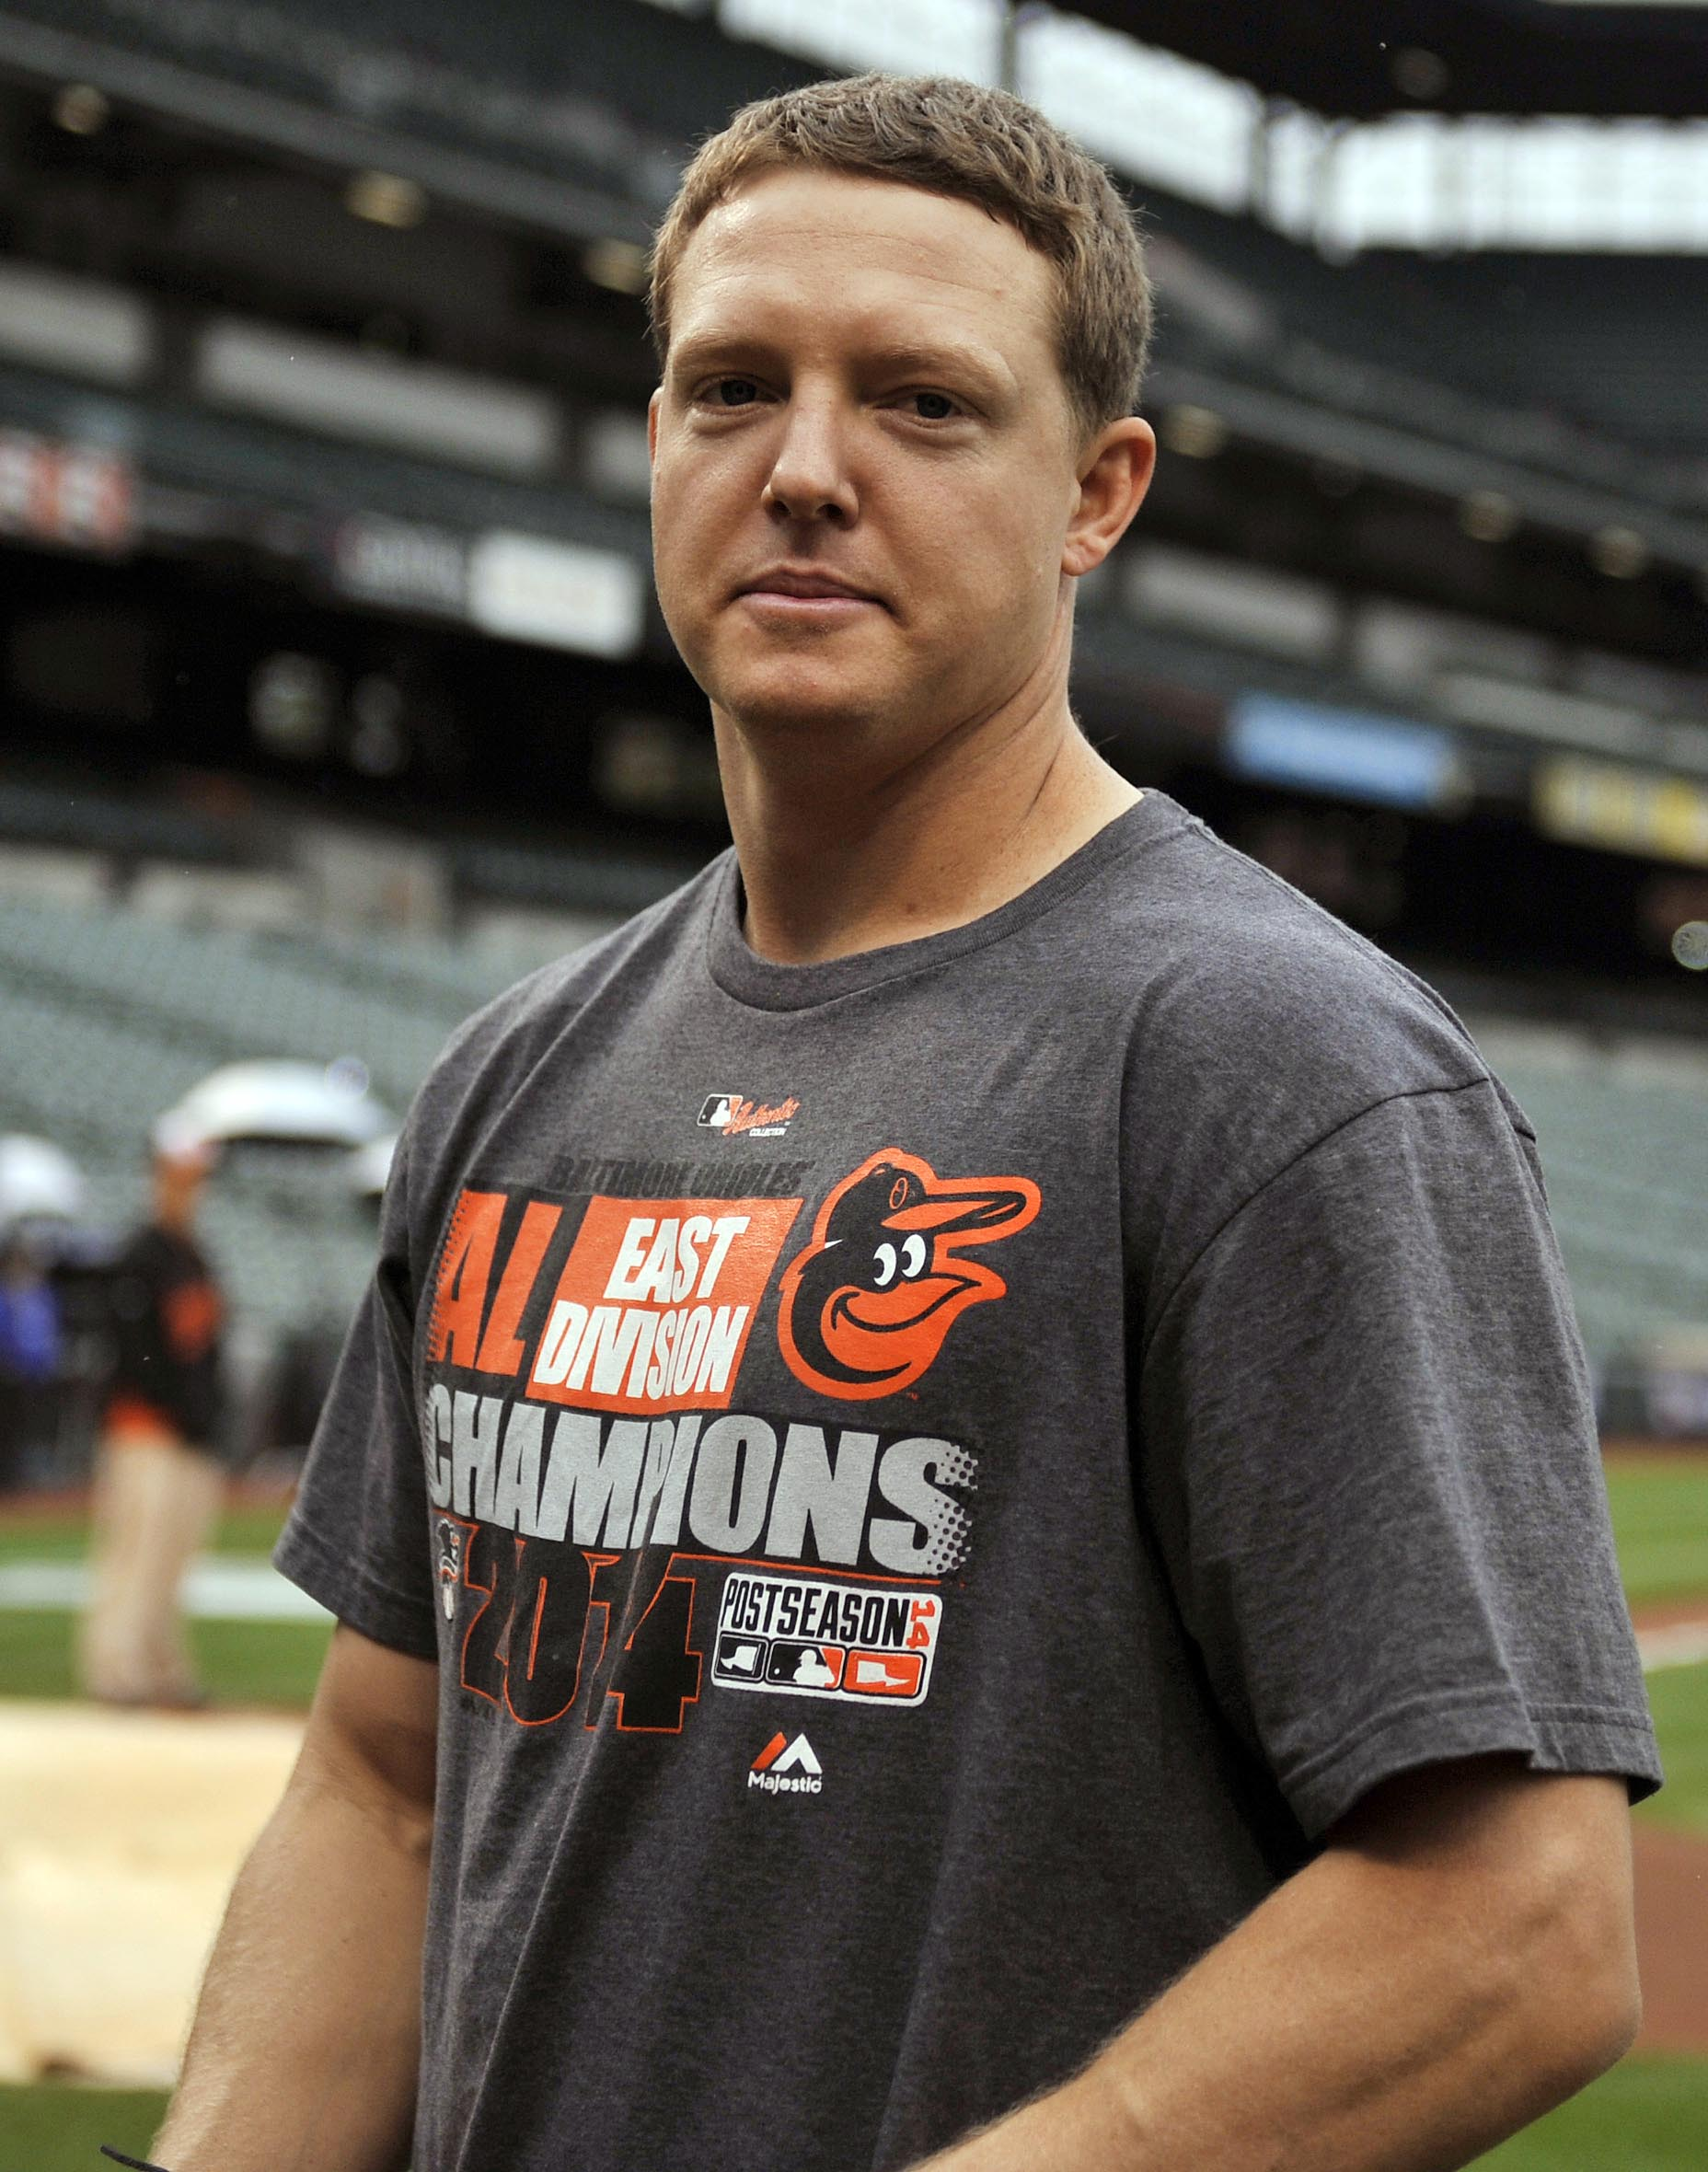 Catcher Nick Hundley is the newest Rockie, but can he make a difference? (USA TODAY Sports)